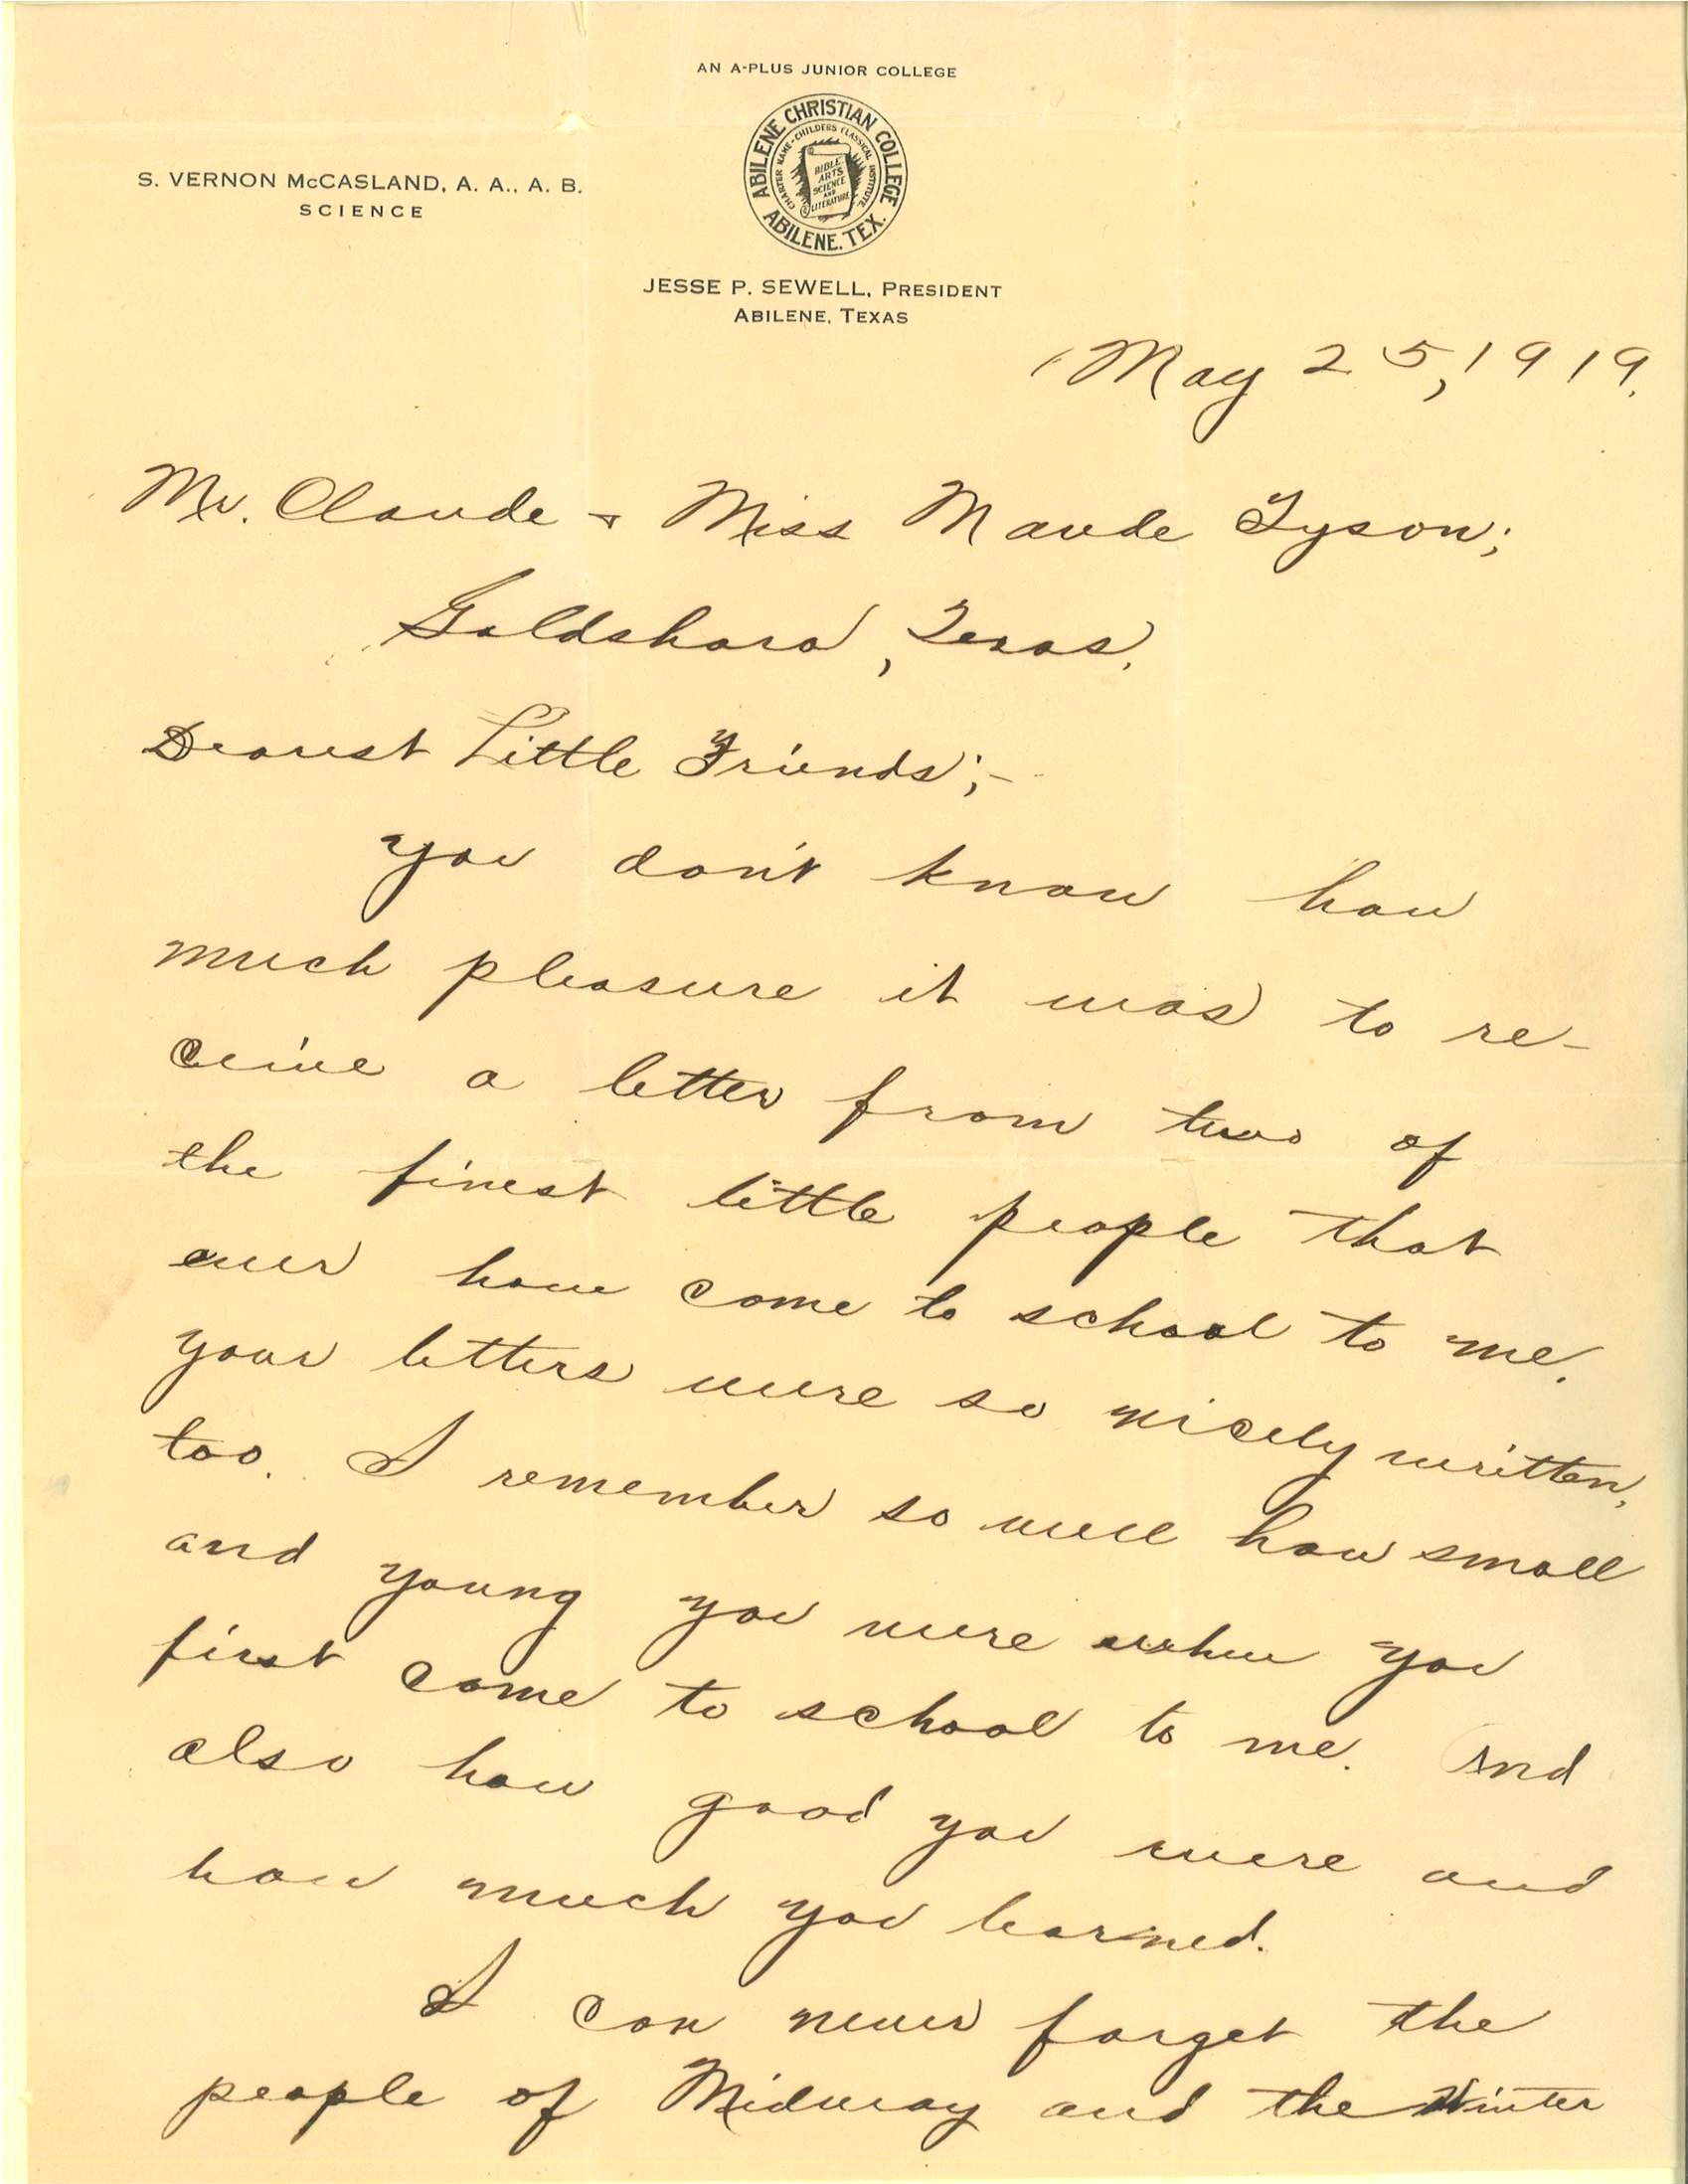 Letter, S. Vernon McCasland to Claude and Laude Tyson, May 25, 1919, p. 1